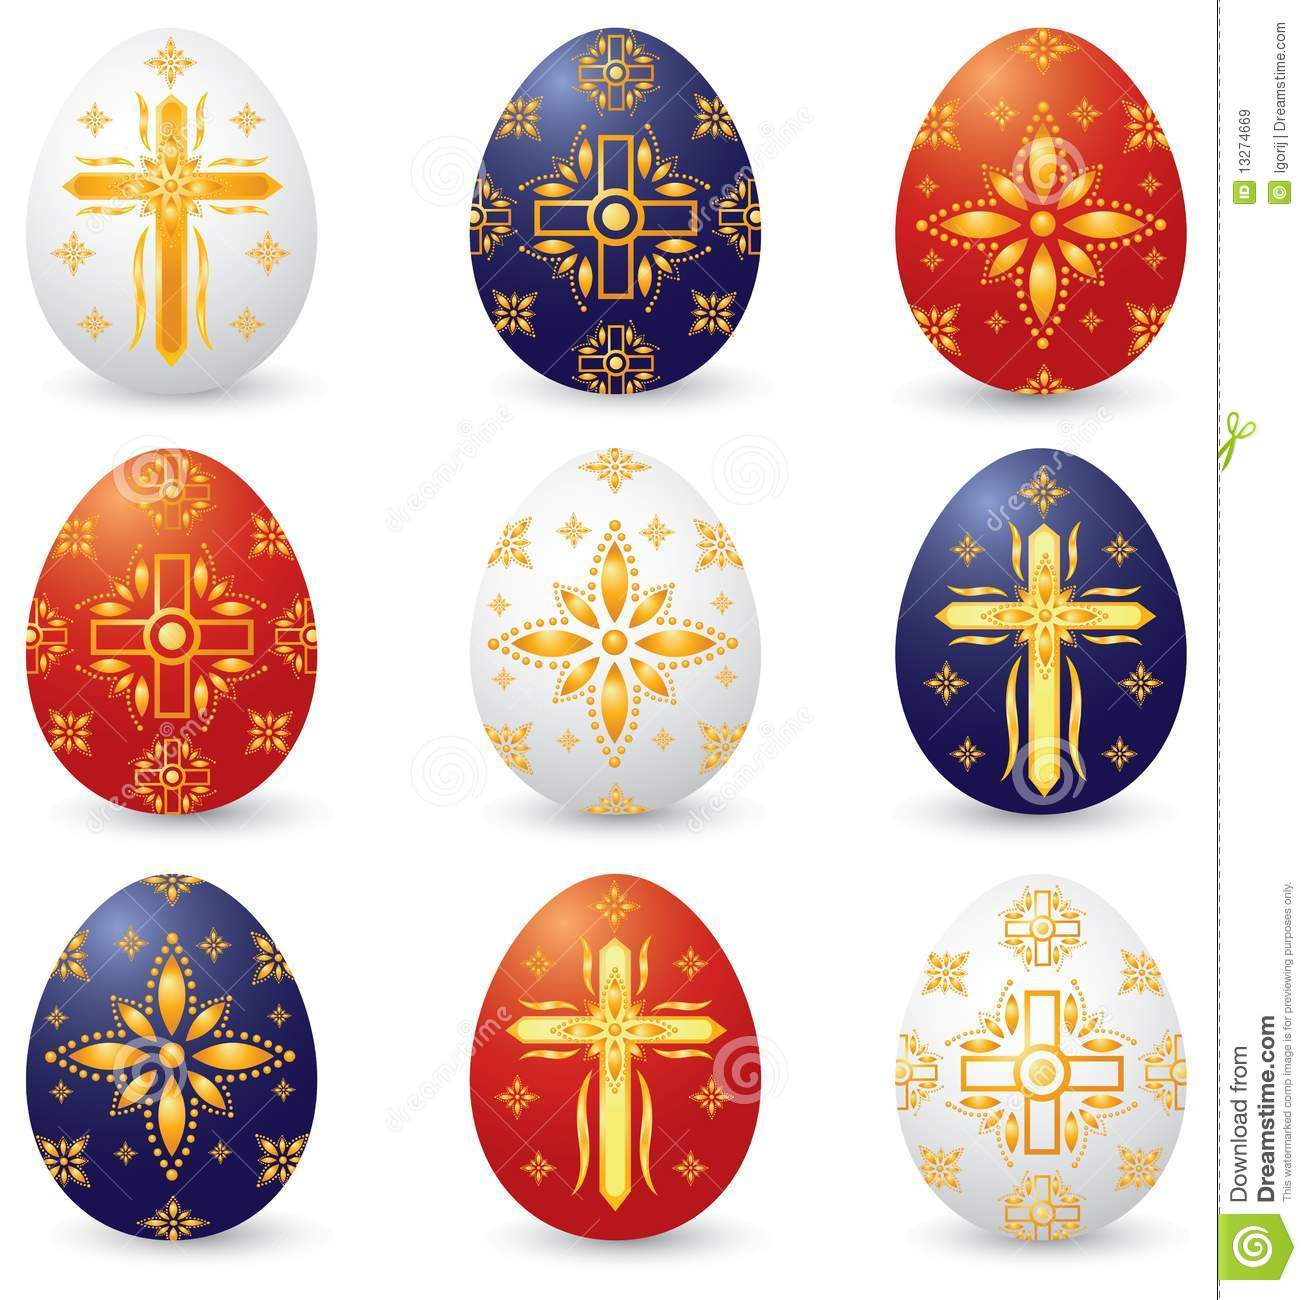 Easter eggs with christian symbols stock illustration christian symbol easter eggs royalty free stock images buycottarizona Images